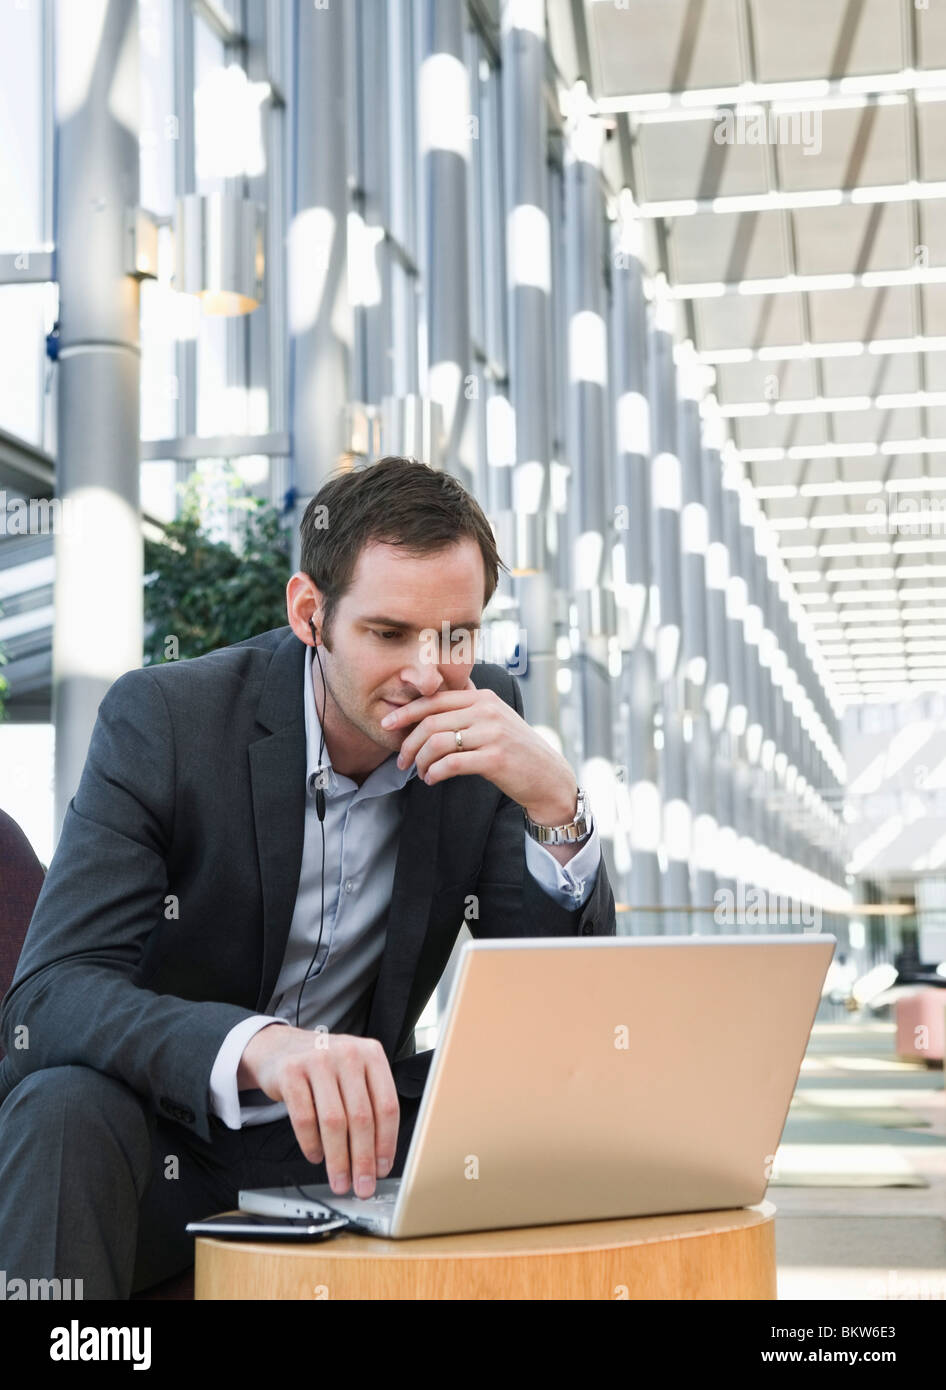 Concentrated businessman - Stock Image